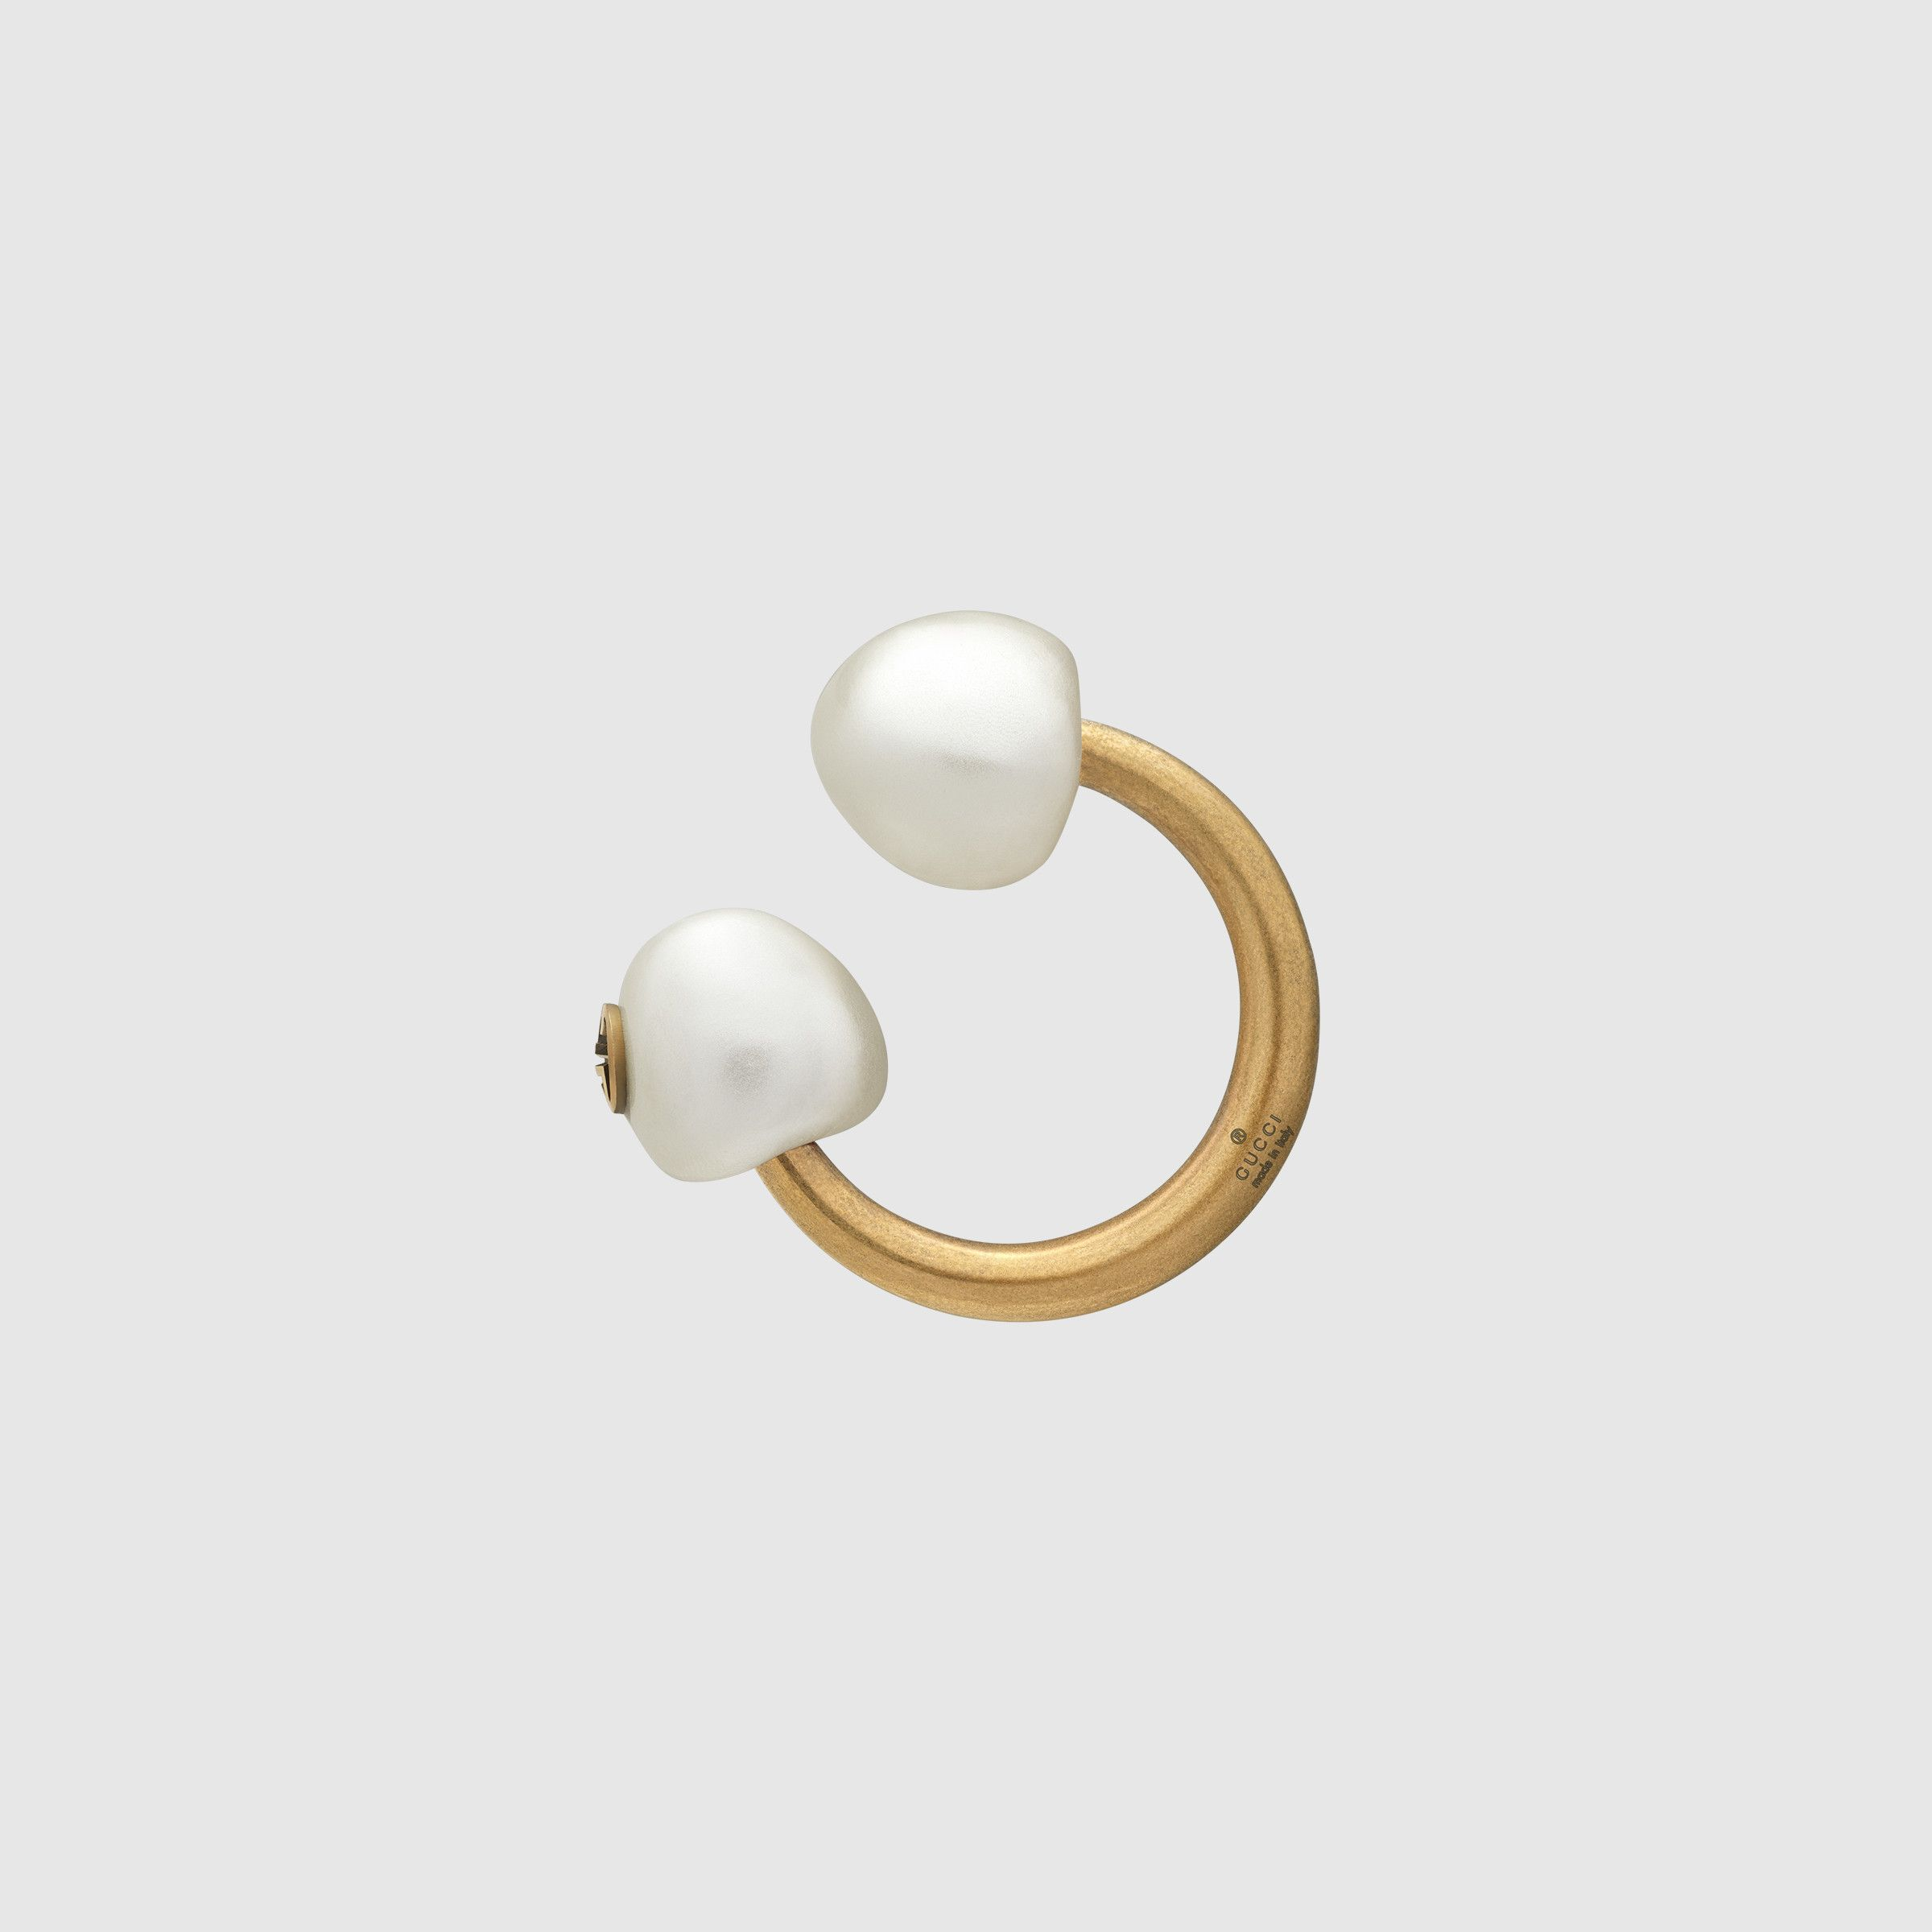 023a3c2735 Gucci Single earring with pearls Detail 2 | 16thBirthday | Gucci ...